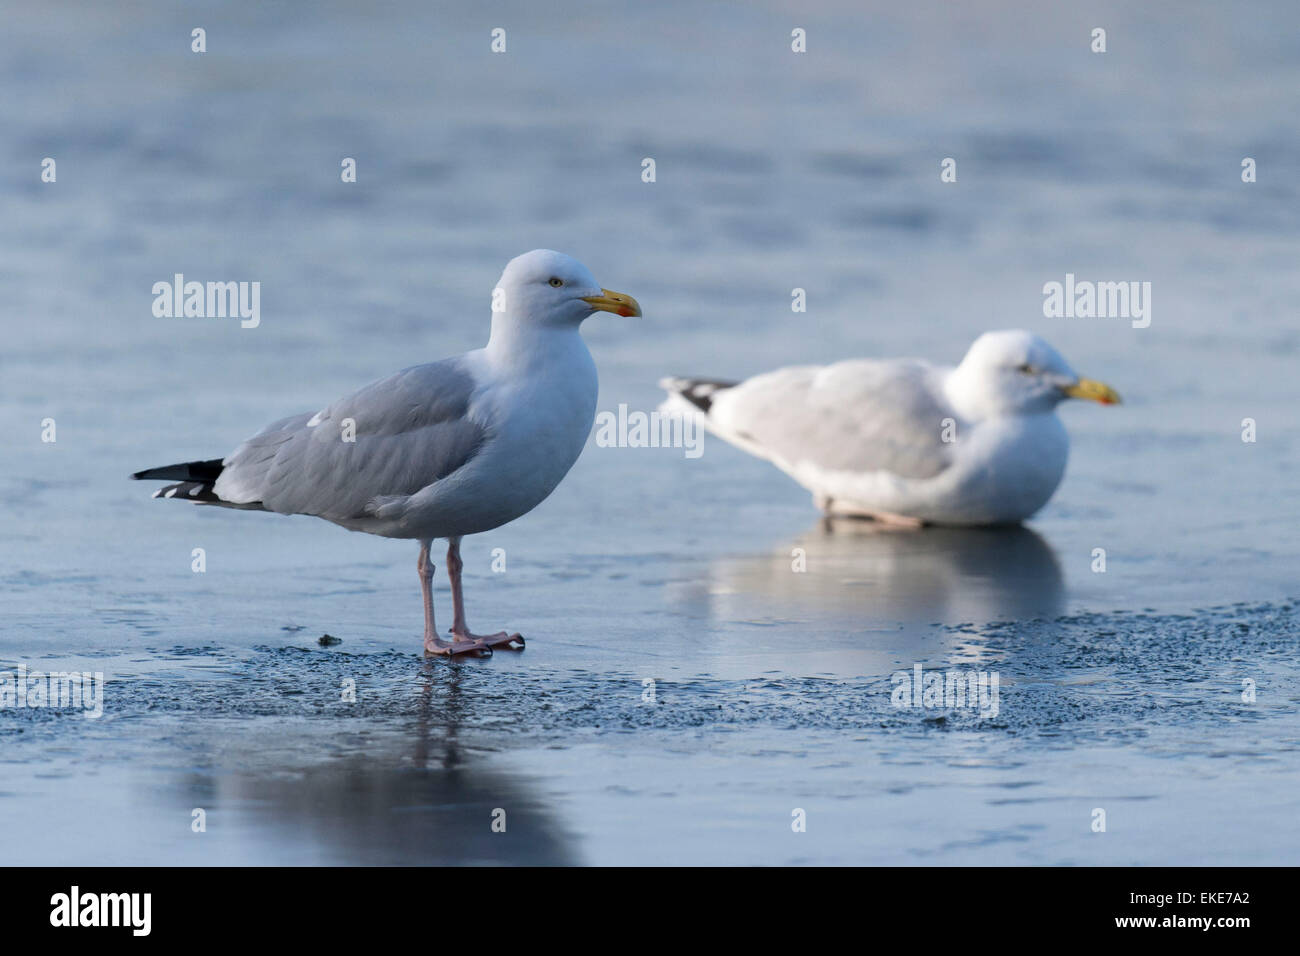 Seagulls on ice in Roath Park, Cardiff, South Wales, after a night of freezing temperatures. - Stock Image